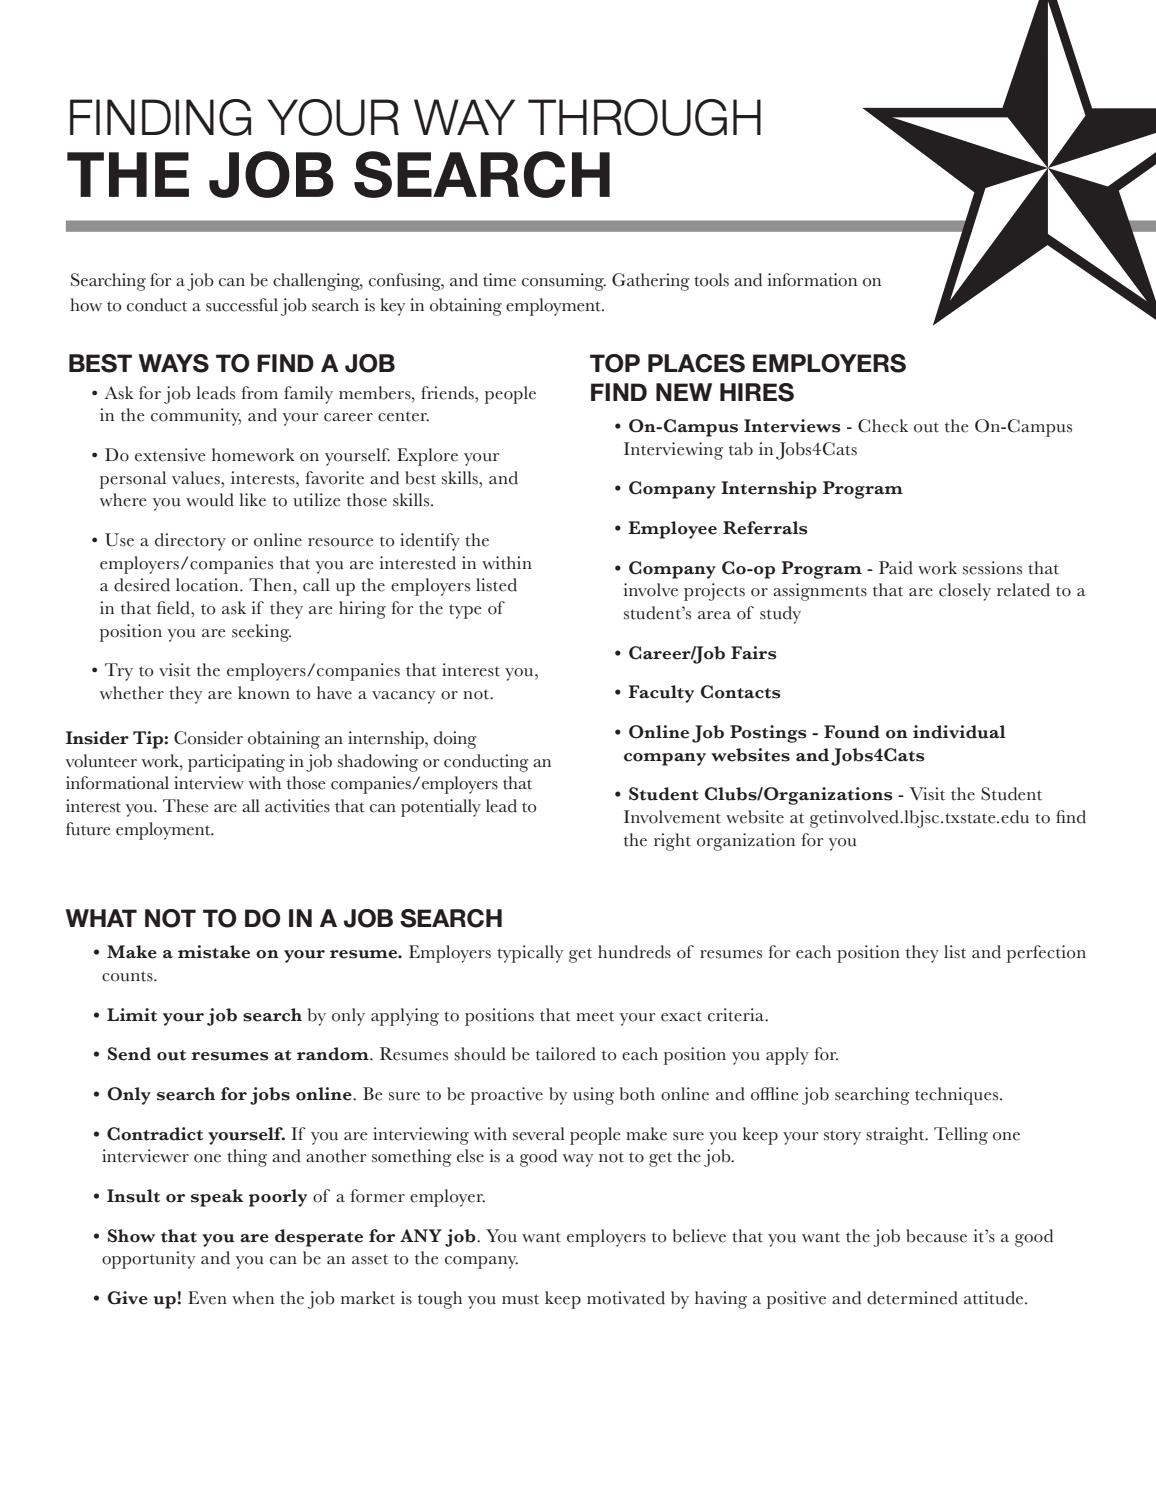 how to get job leads